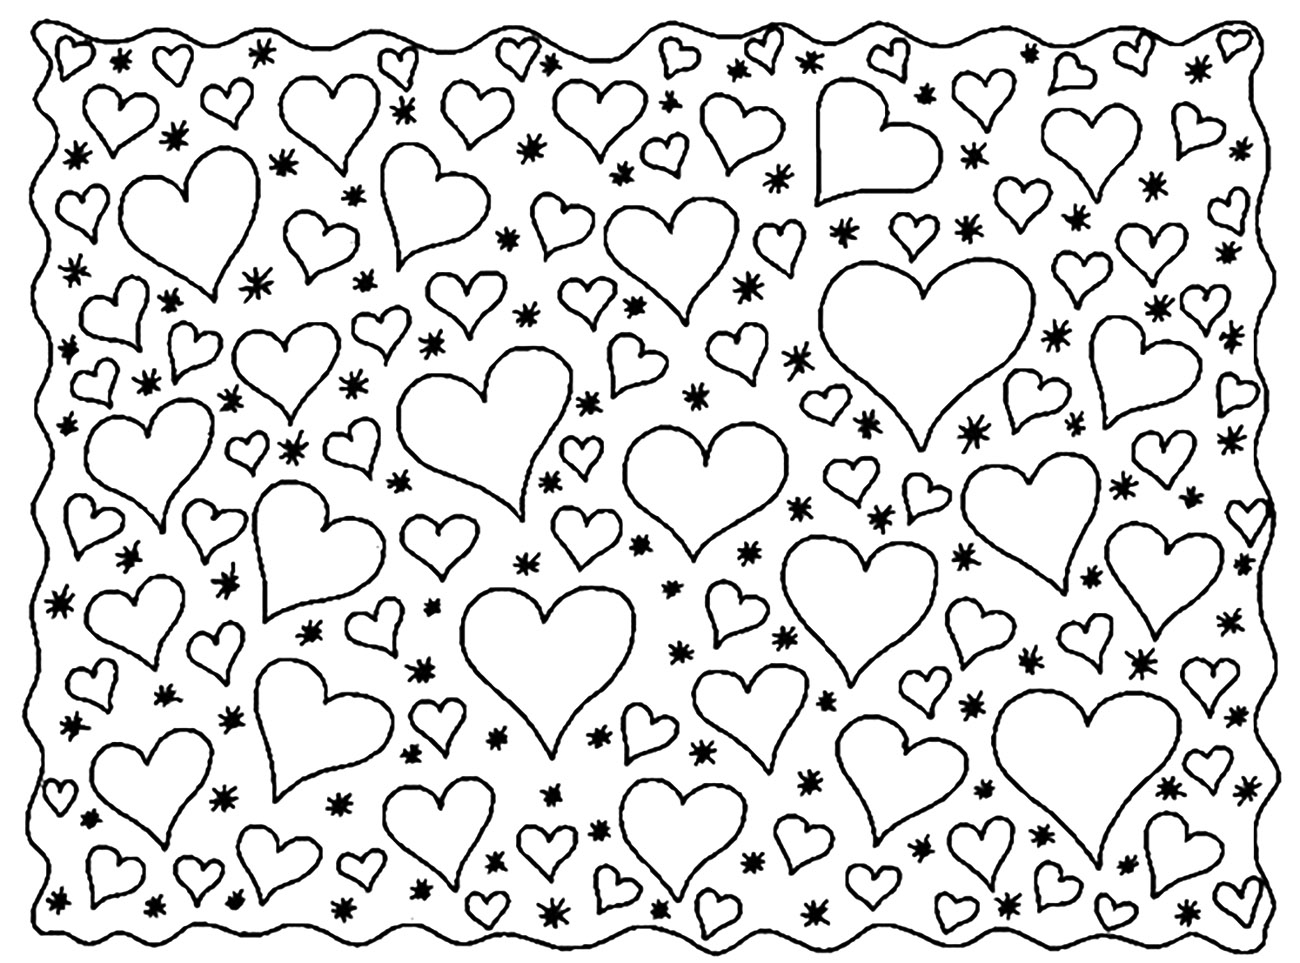 love hearts coloring pages - photo#26